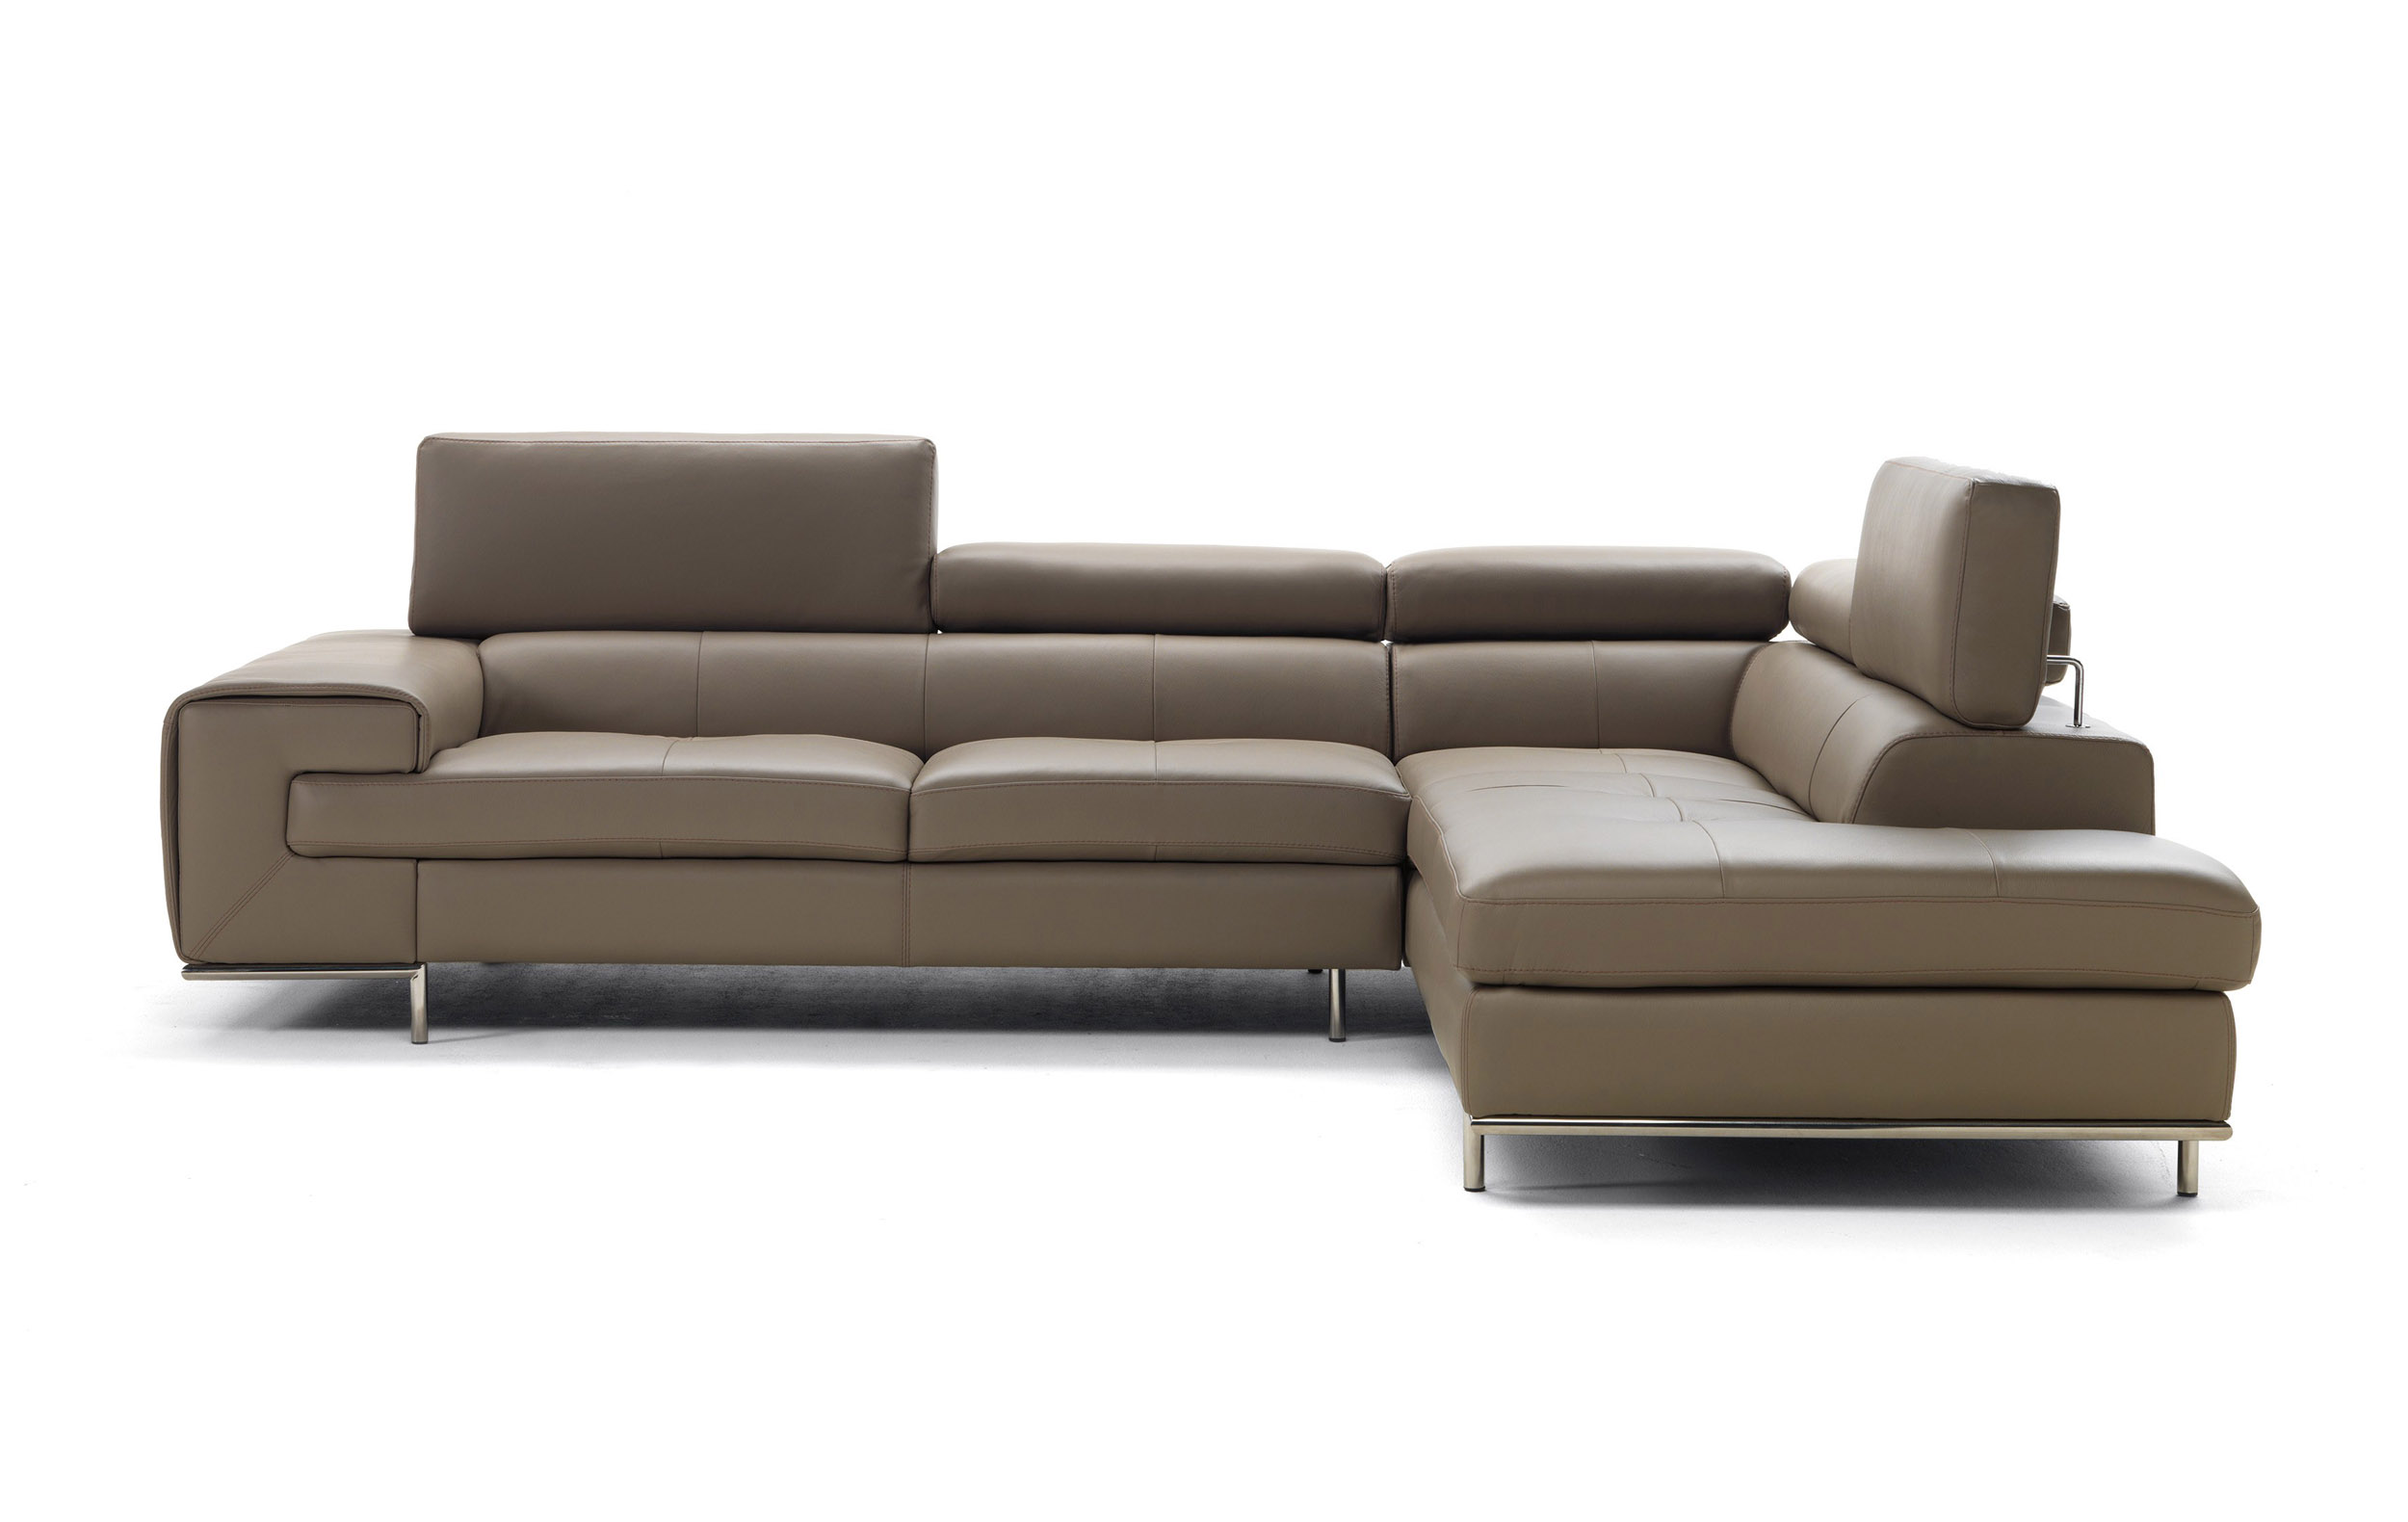 Real leather tufted sectional sofa memphis tennessee for Design made in italy